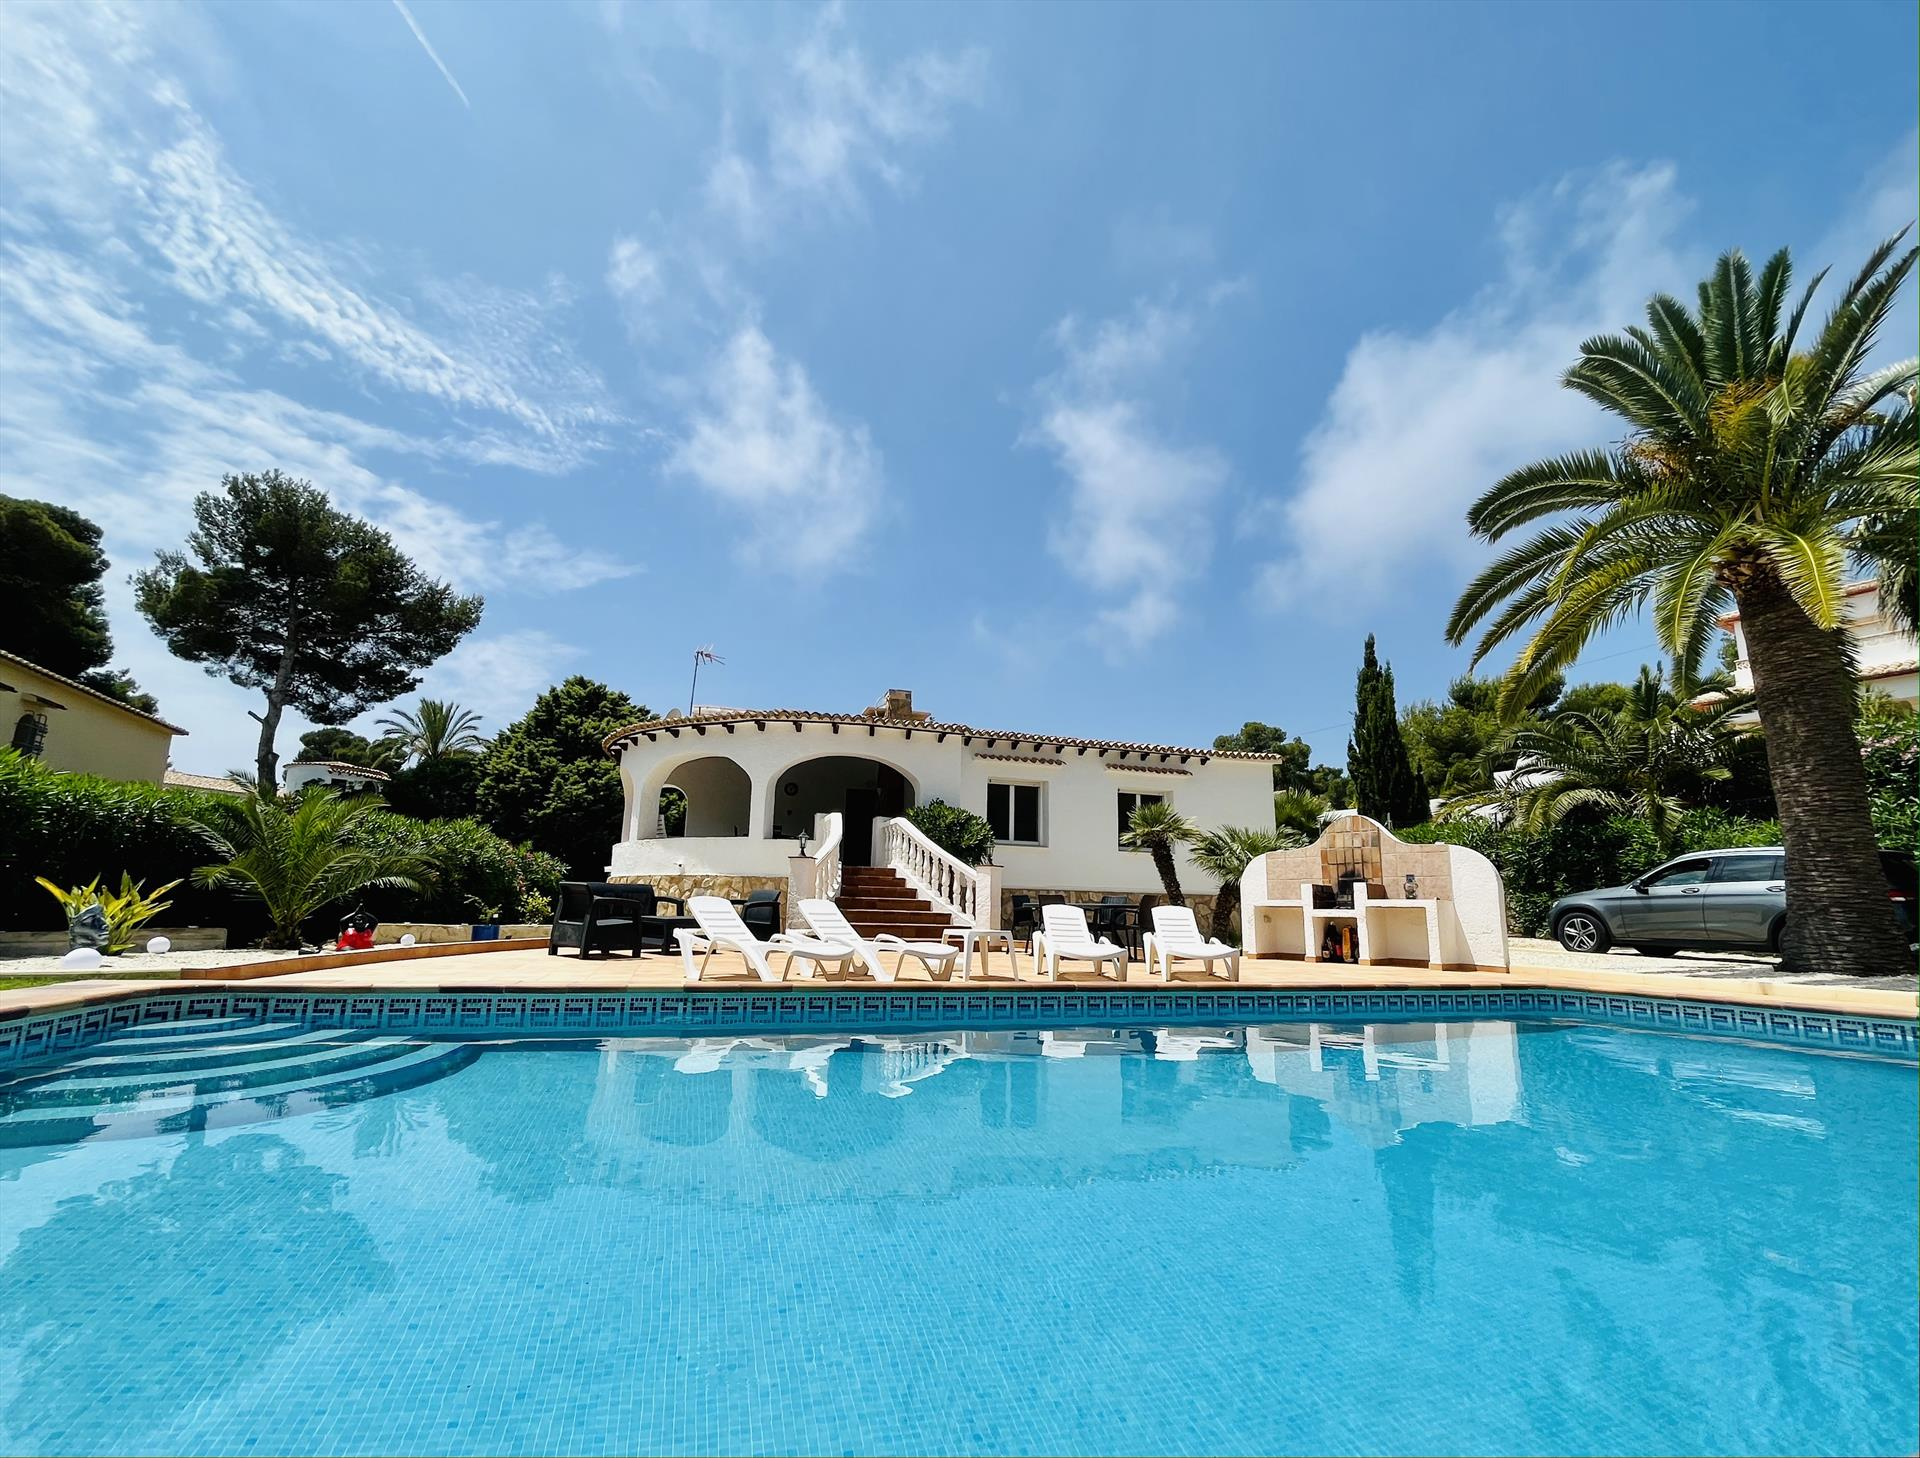 CASA ALBINONI,Wonderful and comfortable holiday house in Javea, on the Costa Blanca, Spain  with private pool for 4 persons.....